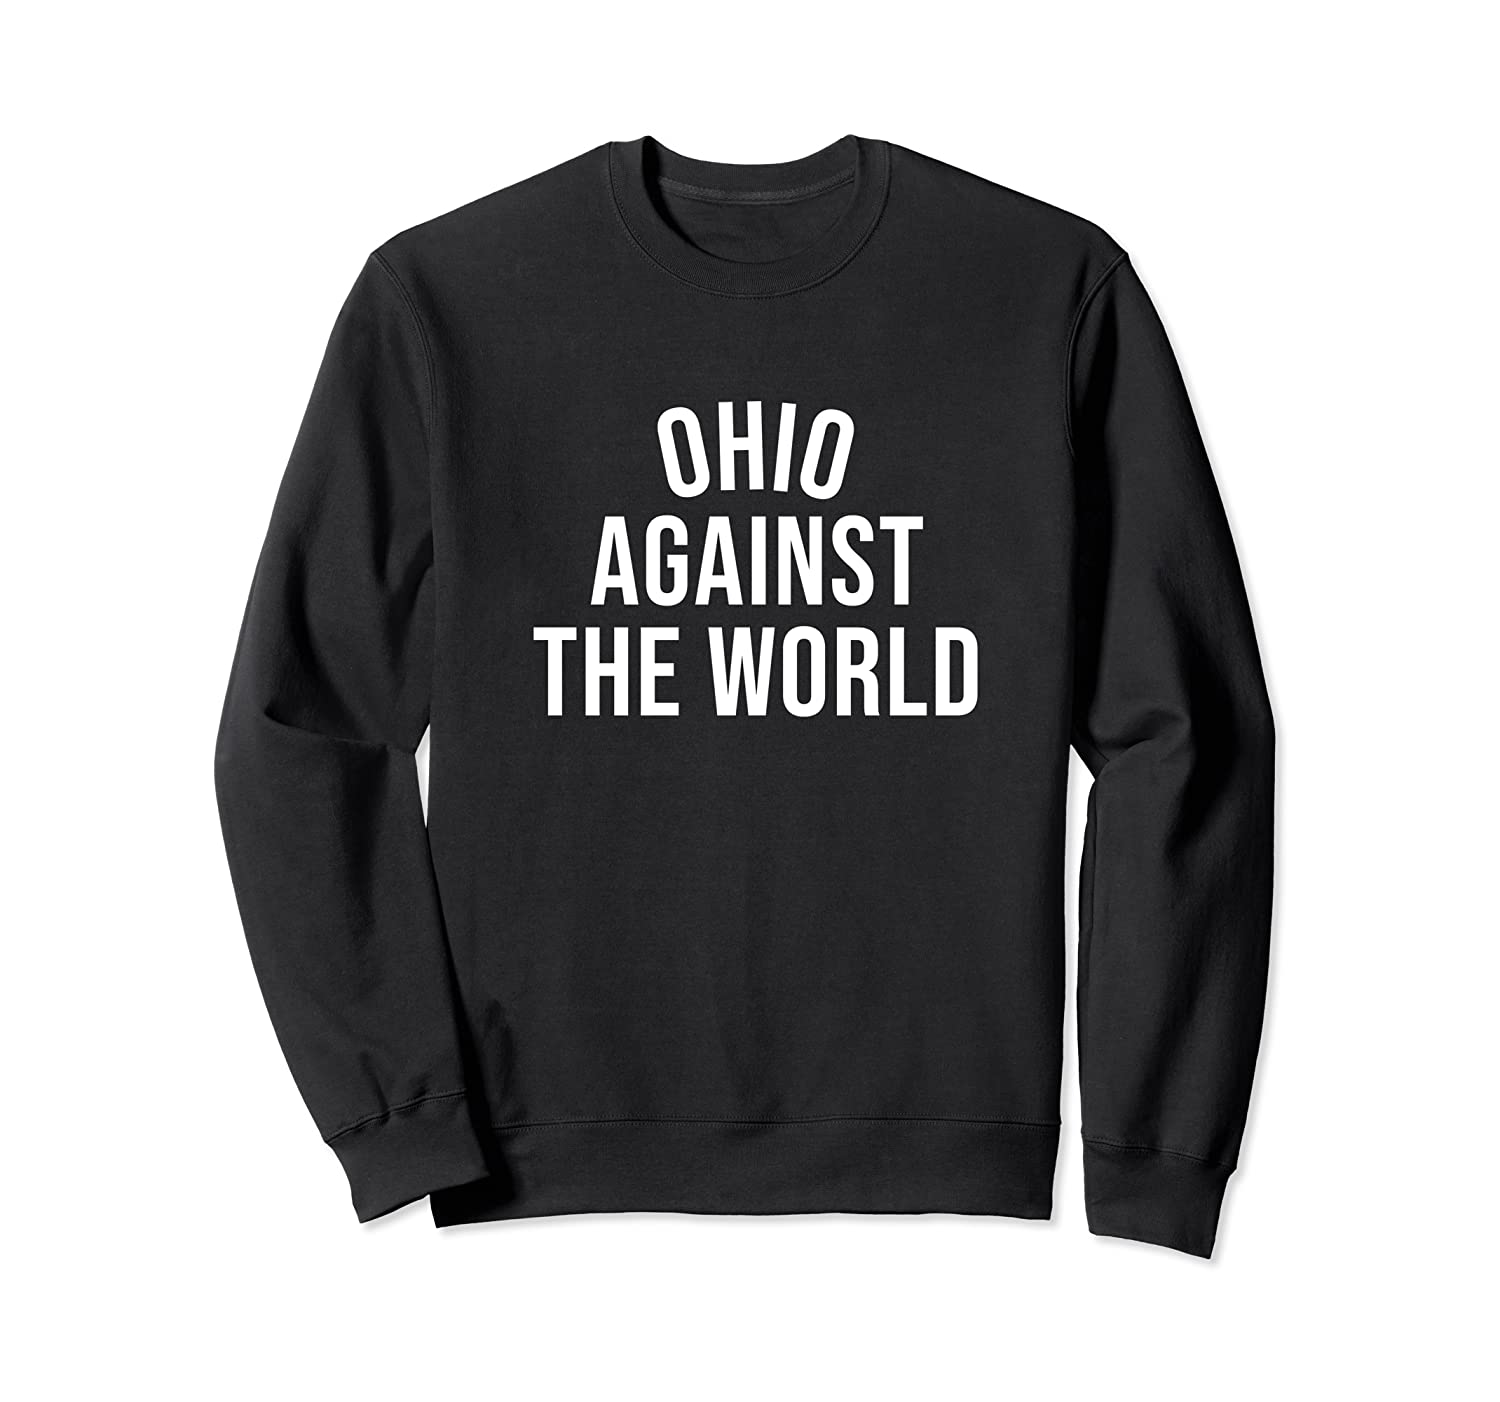 Ohio-Against-The-World Shirt - Plain Tee - Never Counted Out Sweatshirt-TH